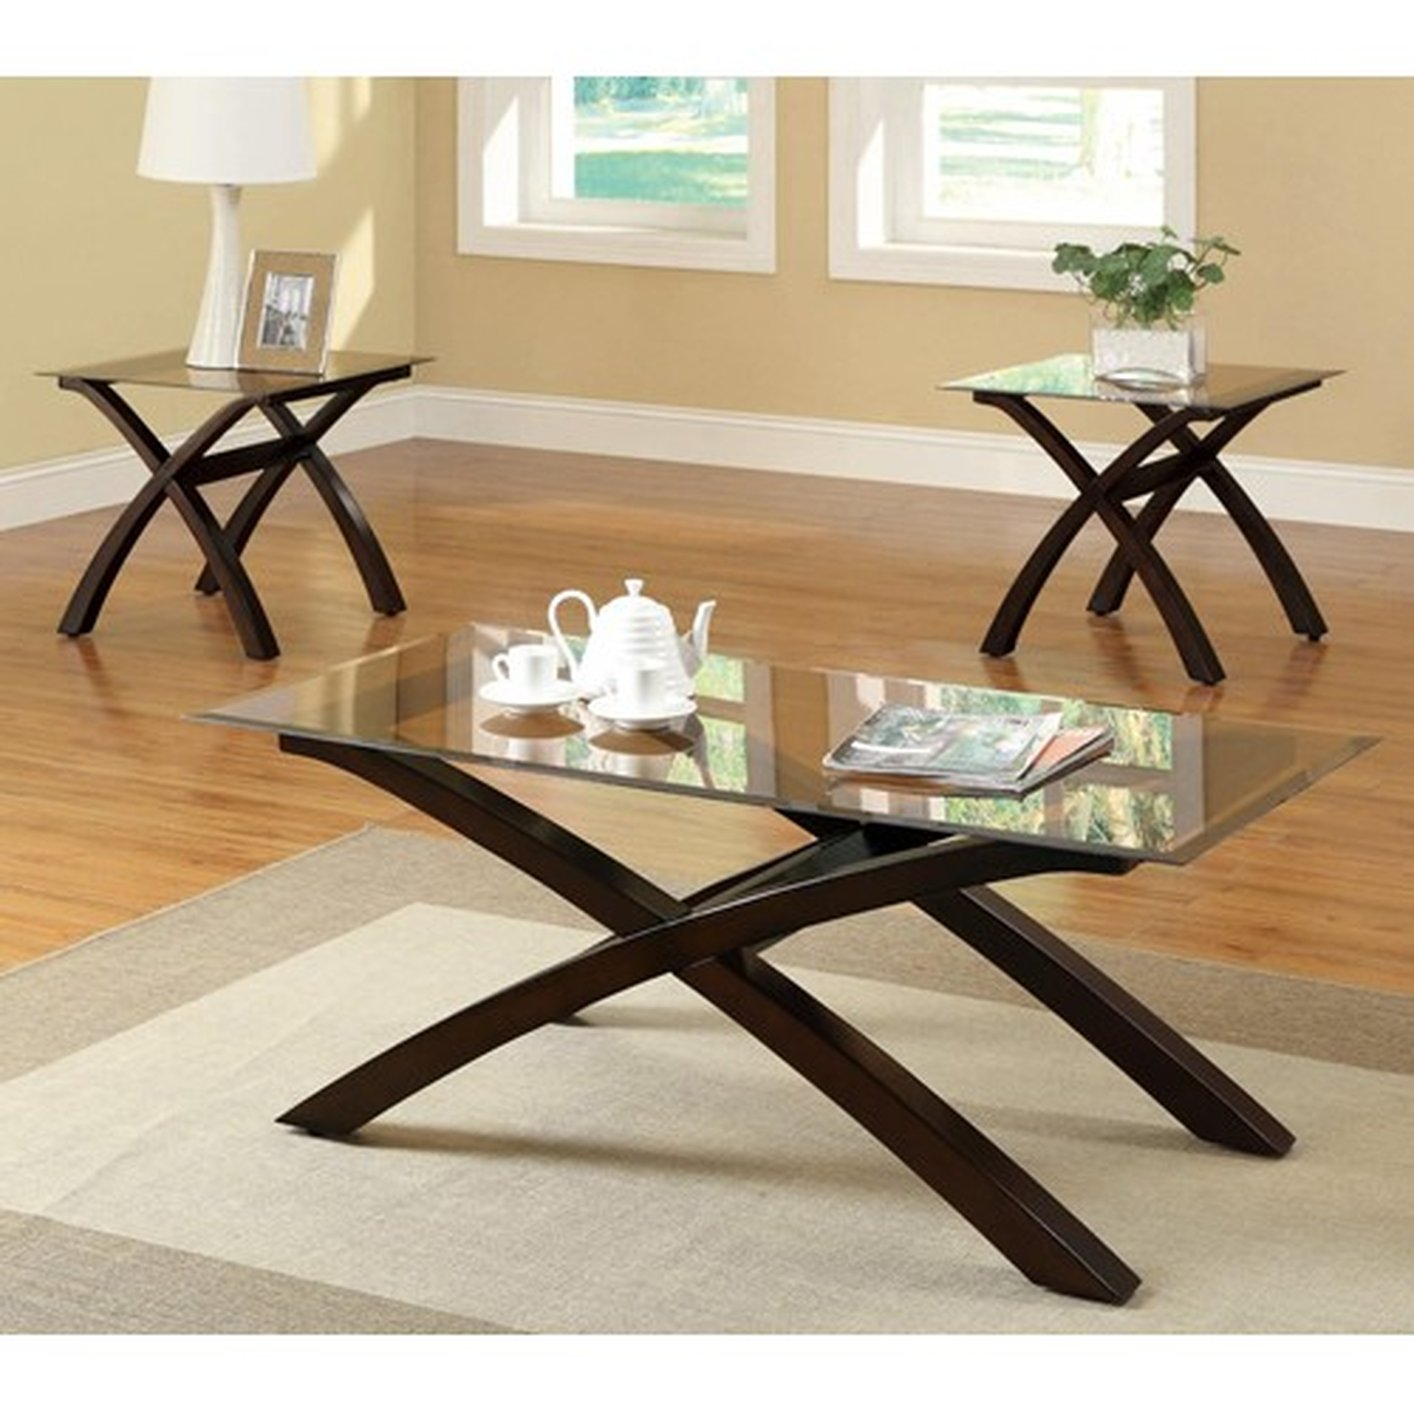 Brown glass coffee table set steal a sofa furniture outlet los angeles ca Glass coffee table set